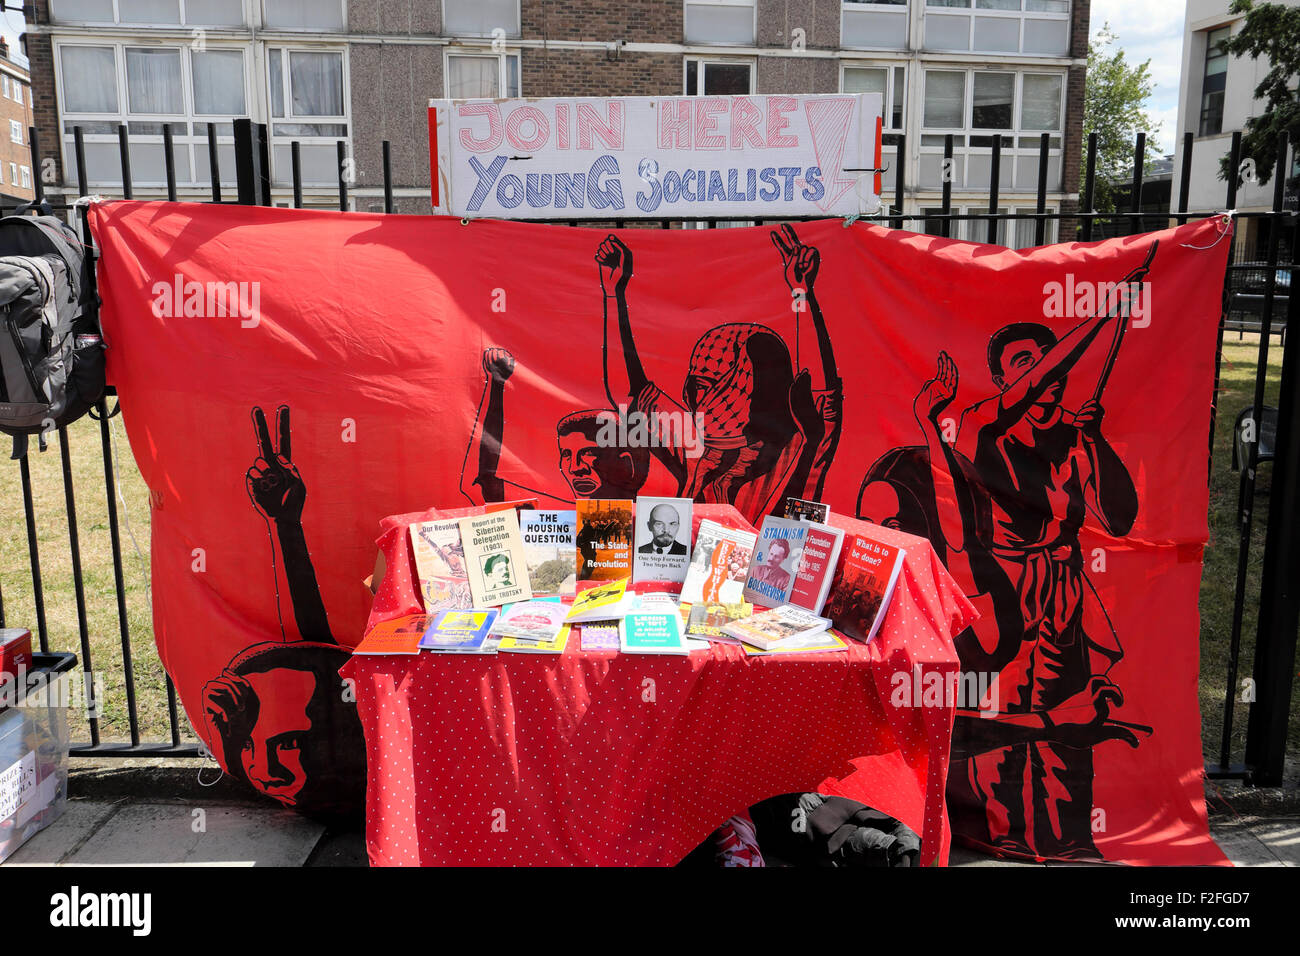 Young Socialists book stall with Lenin Trotsy books at a jumble sale in 2015 Hoxton London, UK   KATHY DEWITT - Stock Image